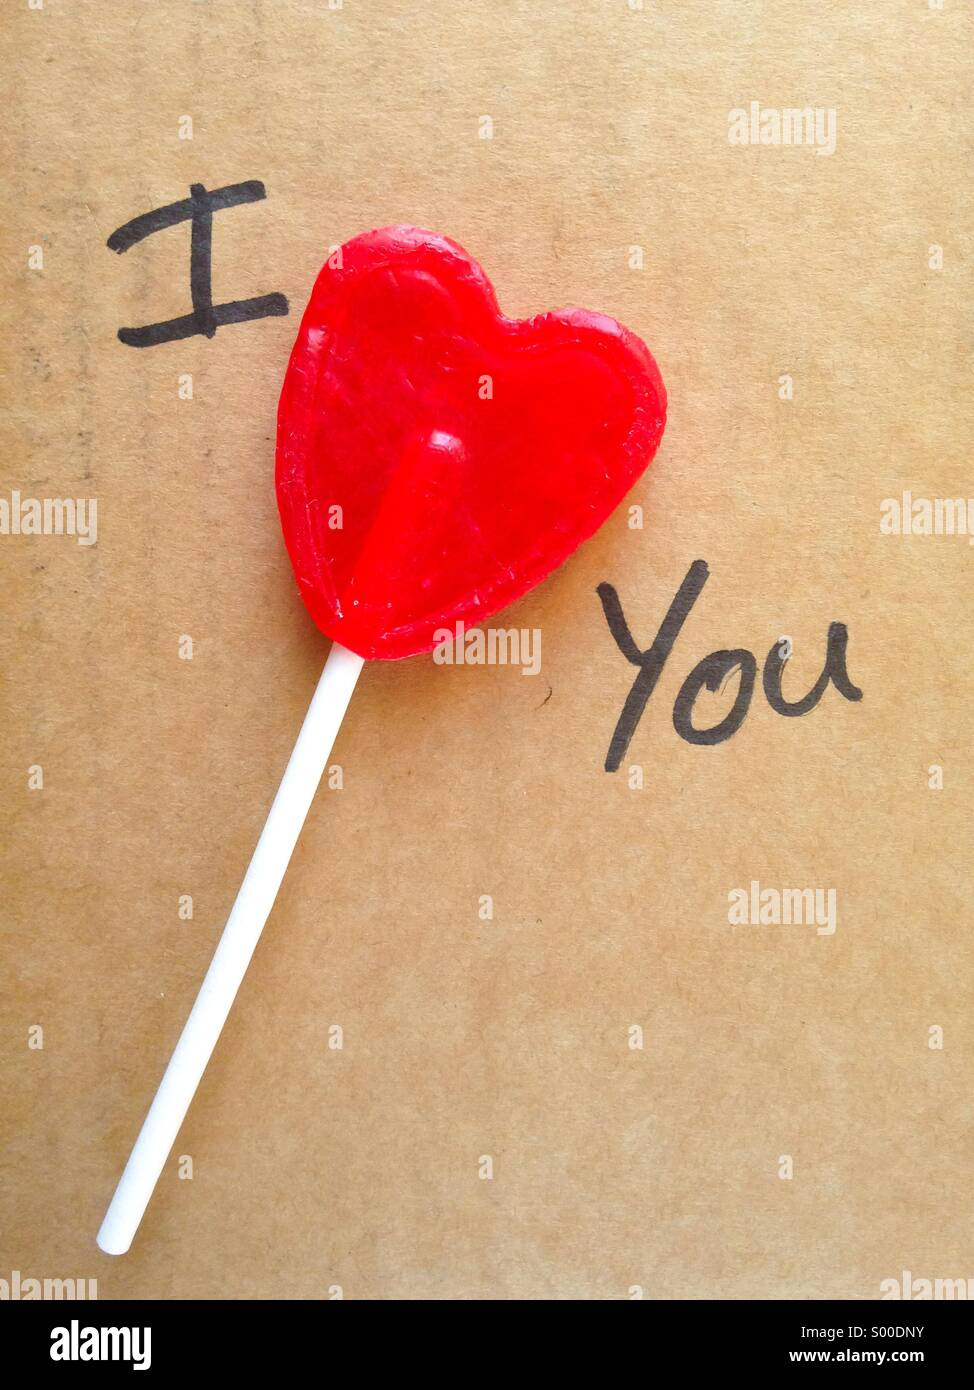 I love you message - Stock Image